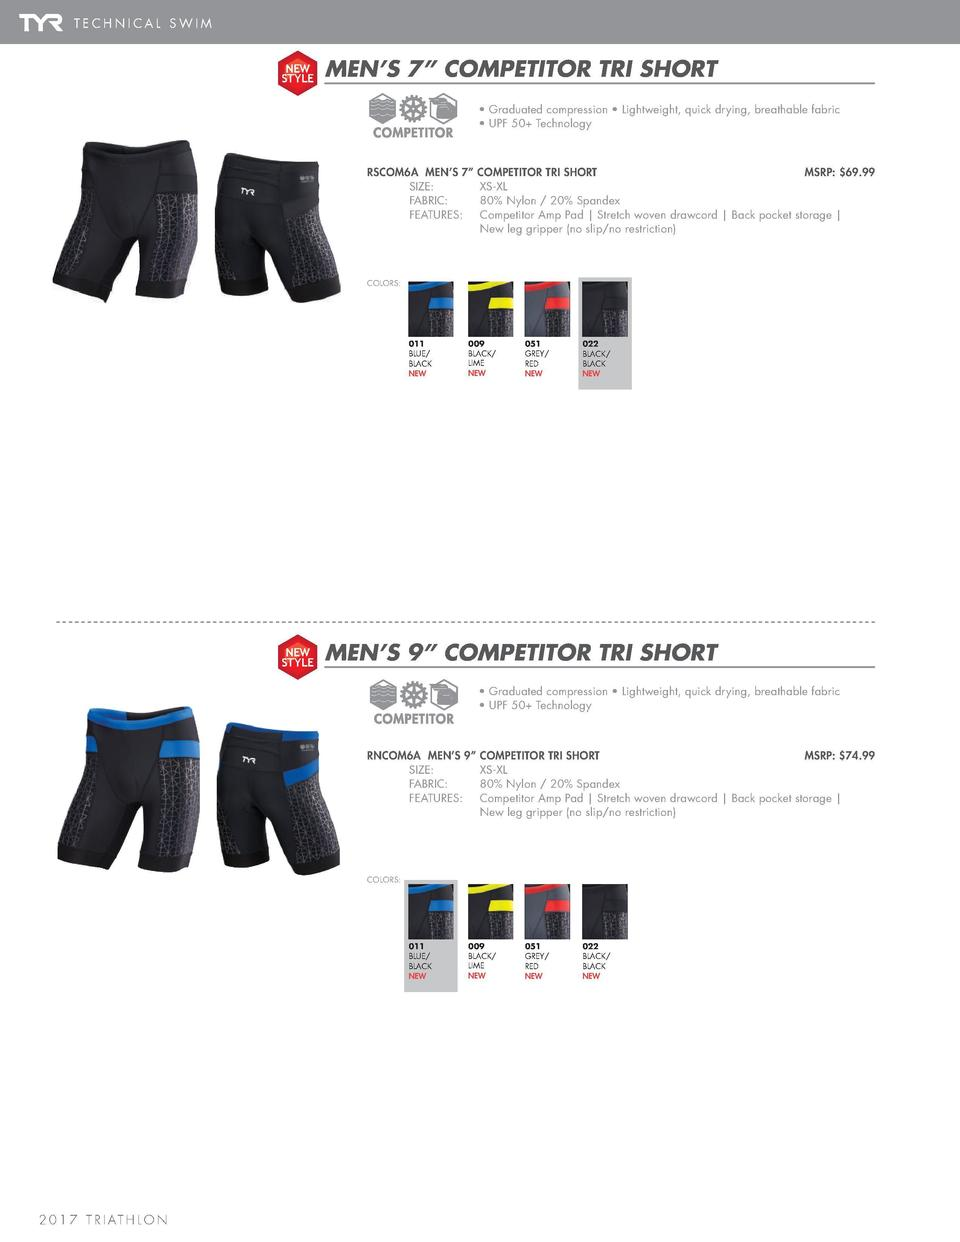 T R I S H O R T S   T R I AT H L O N A C C E S S O R I E S  TECHNICAL SWIM NEW STYLE  MEN   S 7    COMPETITOR TRI SHORT   ...